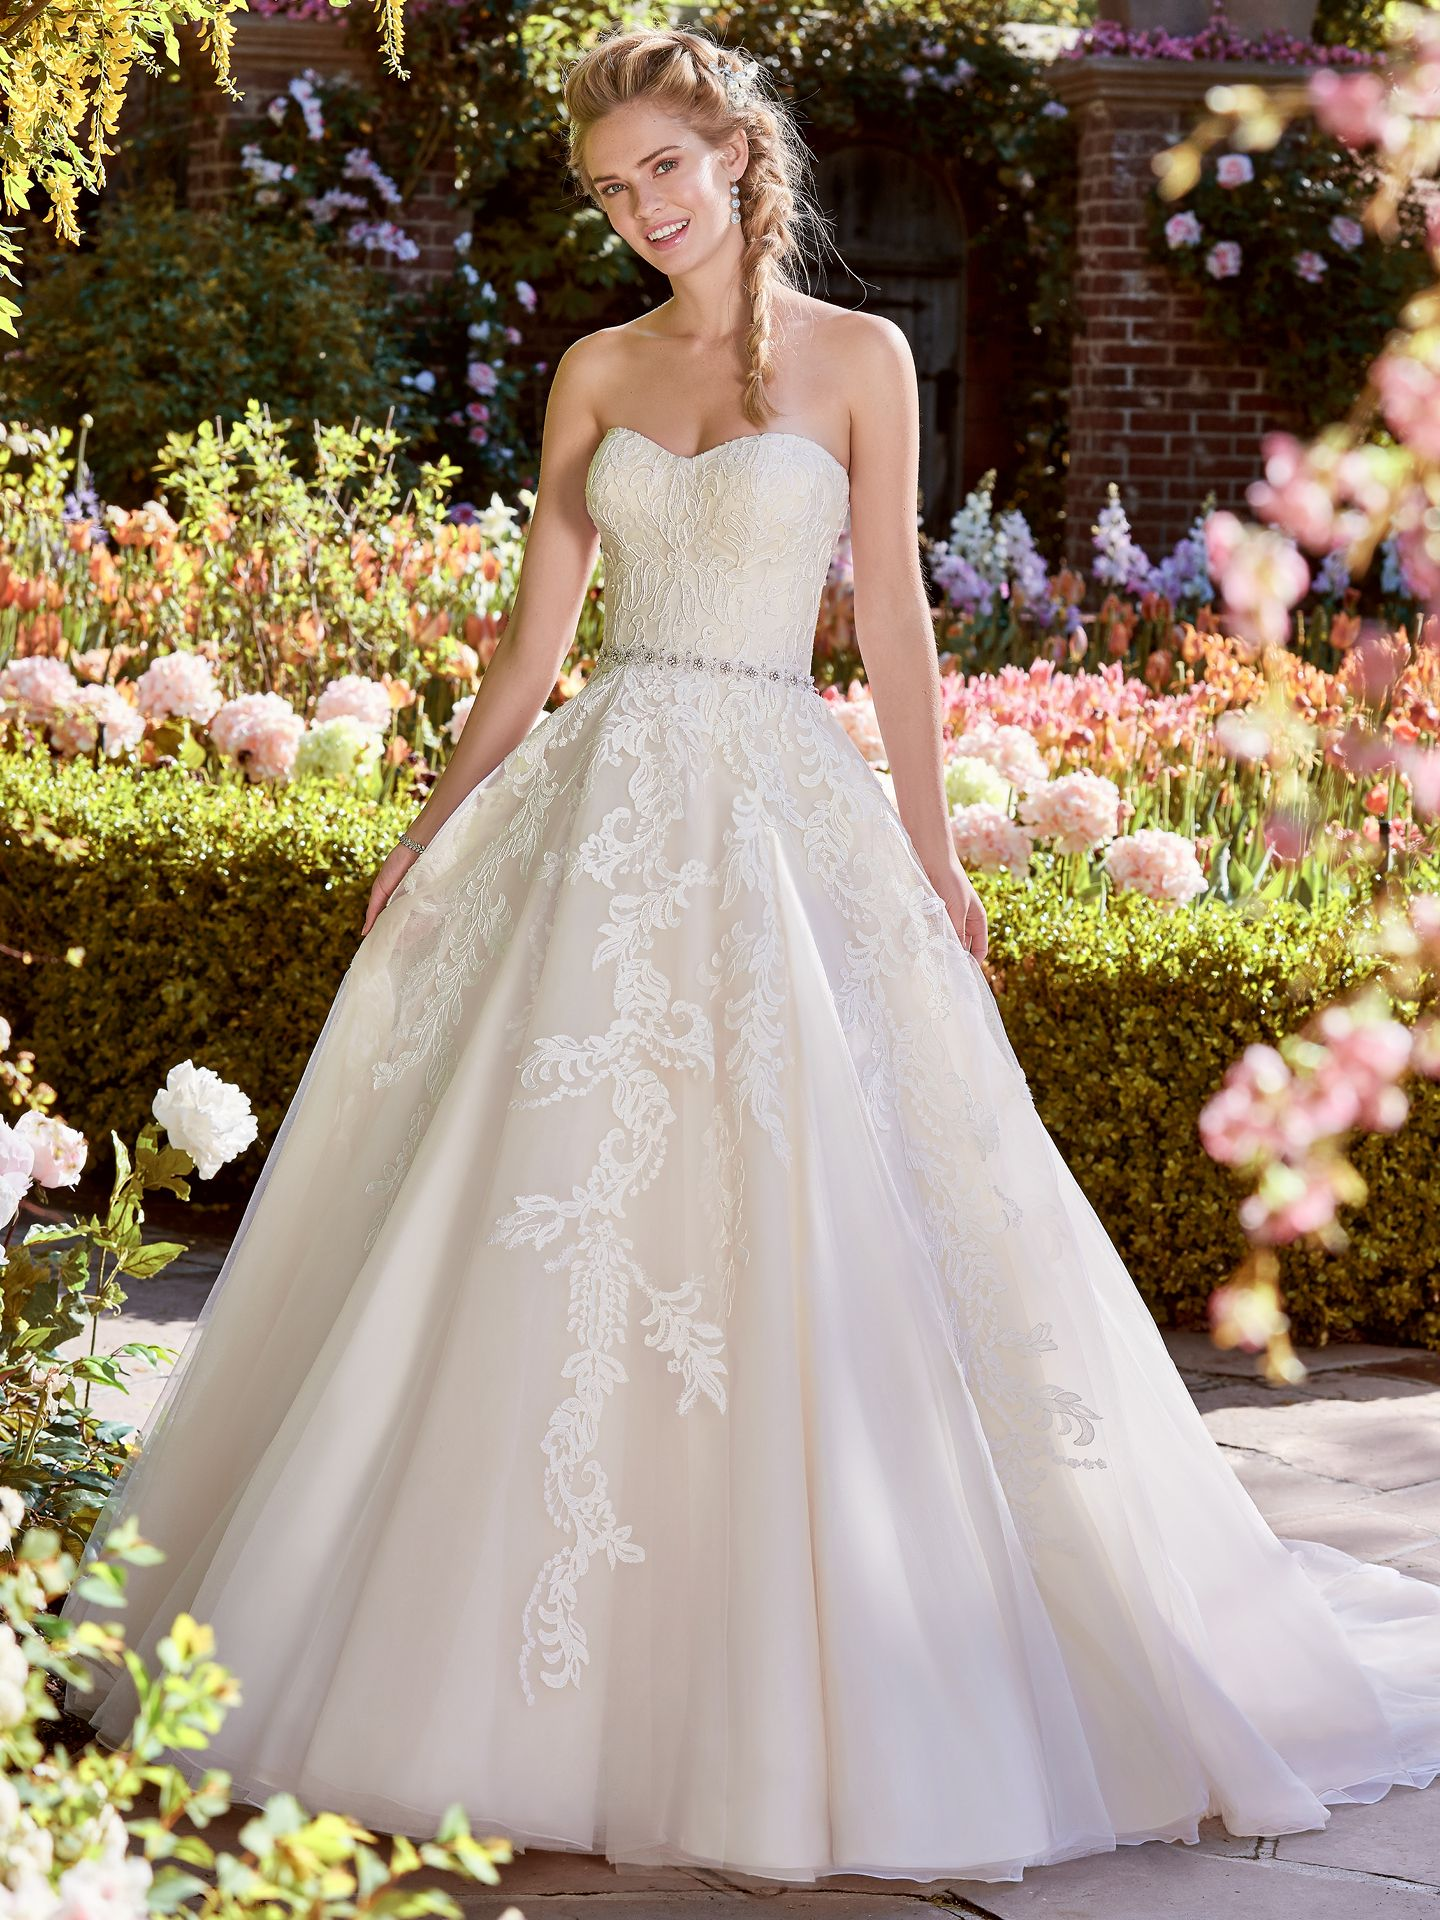 Bernice by Rebecca Ingram. This royal wedding dress features a bodice of lace motifs atop a tulle skirt. A strapless scoop neckline and beaded belt accented in Swarovski crystals complete the romance of this Ballgown. Finished with covered buttons and zipper over inner corset closure. Princess Ballgowns For Royal Weddings